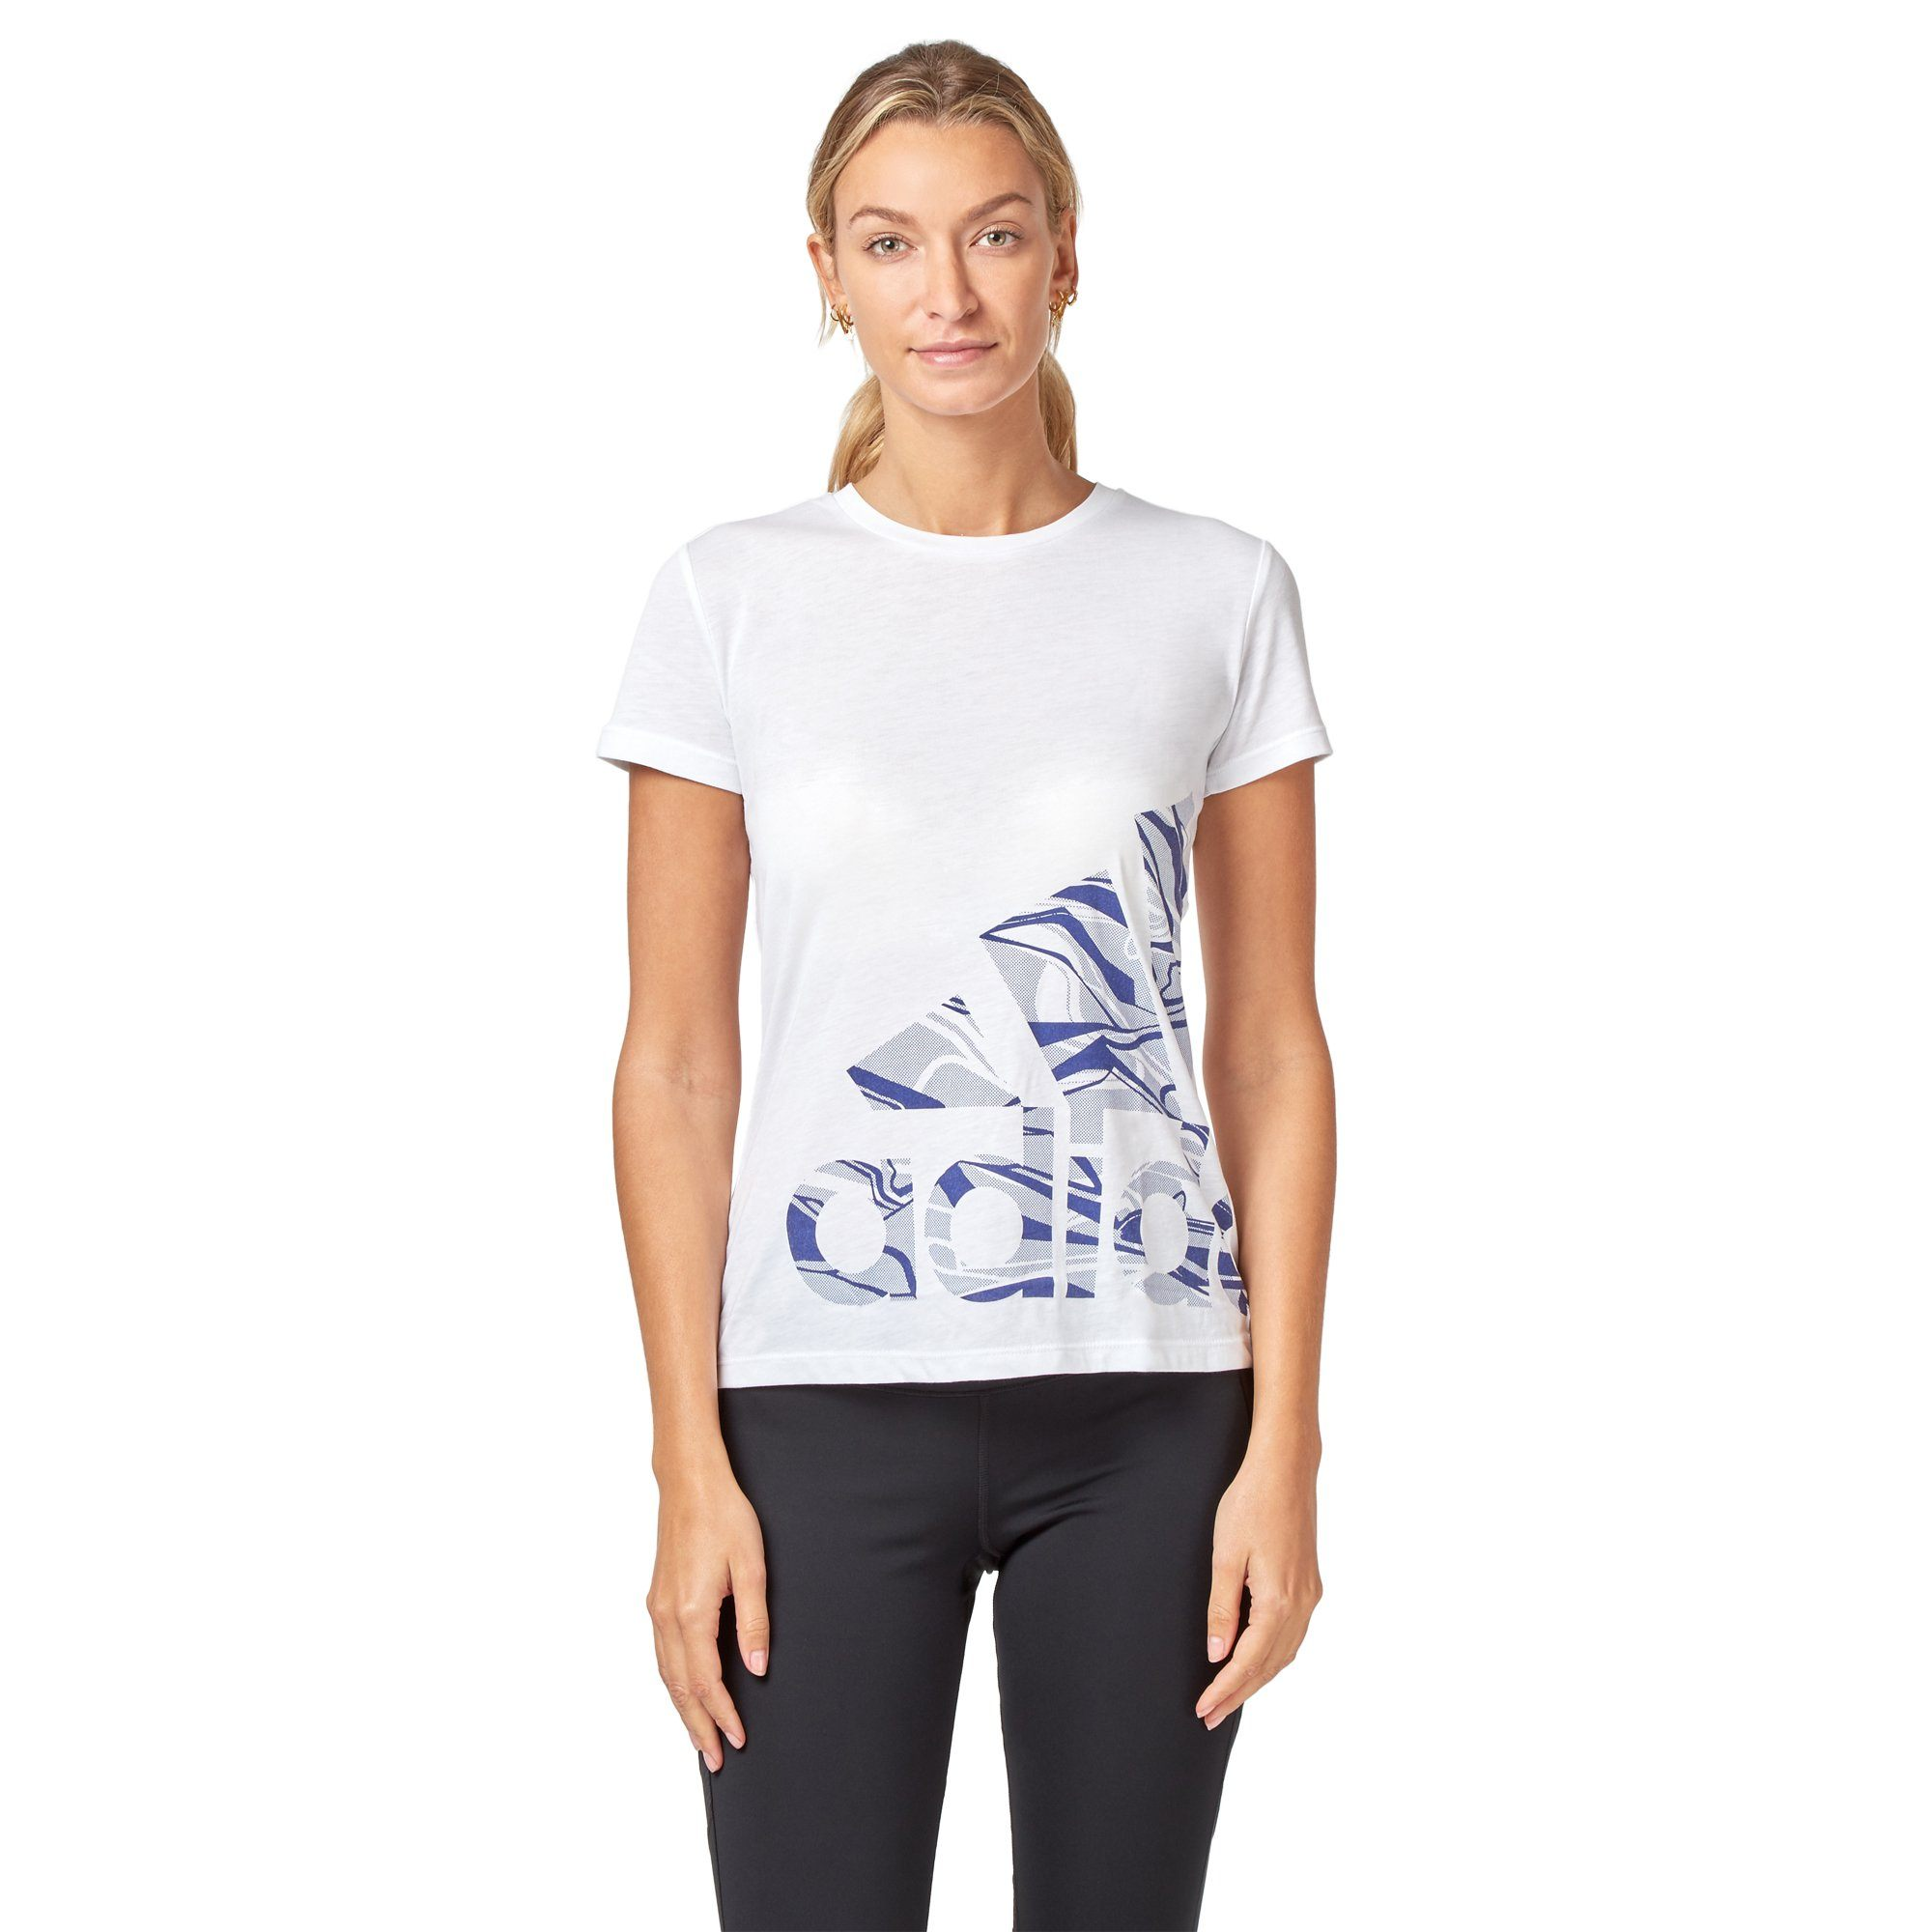 Adidas Women's Logo Tee - White SportsPower Geelong  (2012421029947)